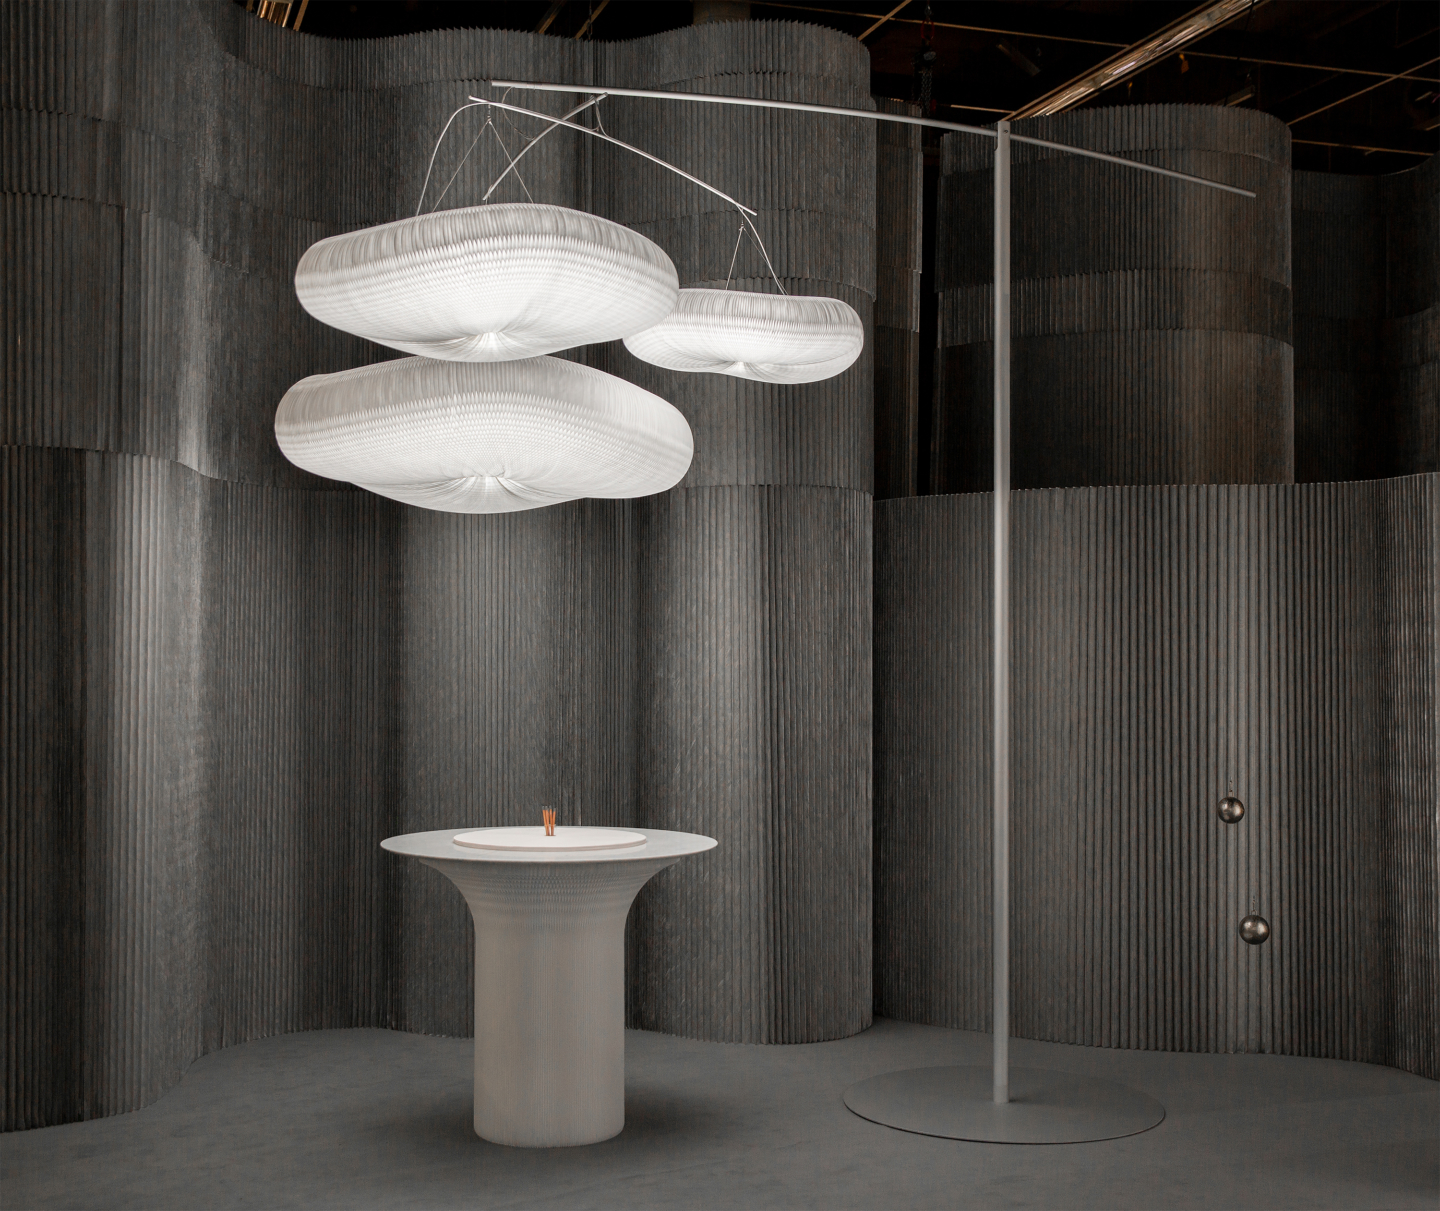 aluminum room divider wall, cloud mast pendant light lamp, cantilever table by molo